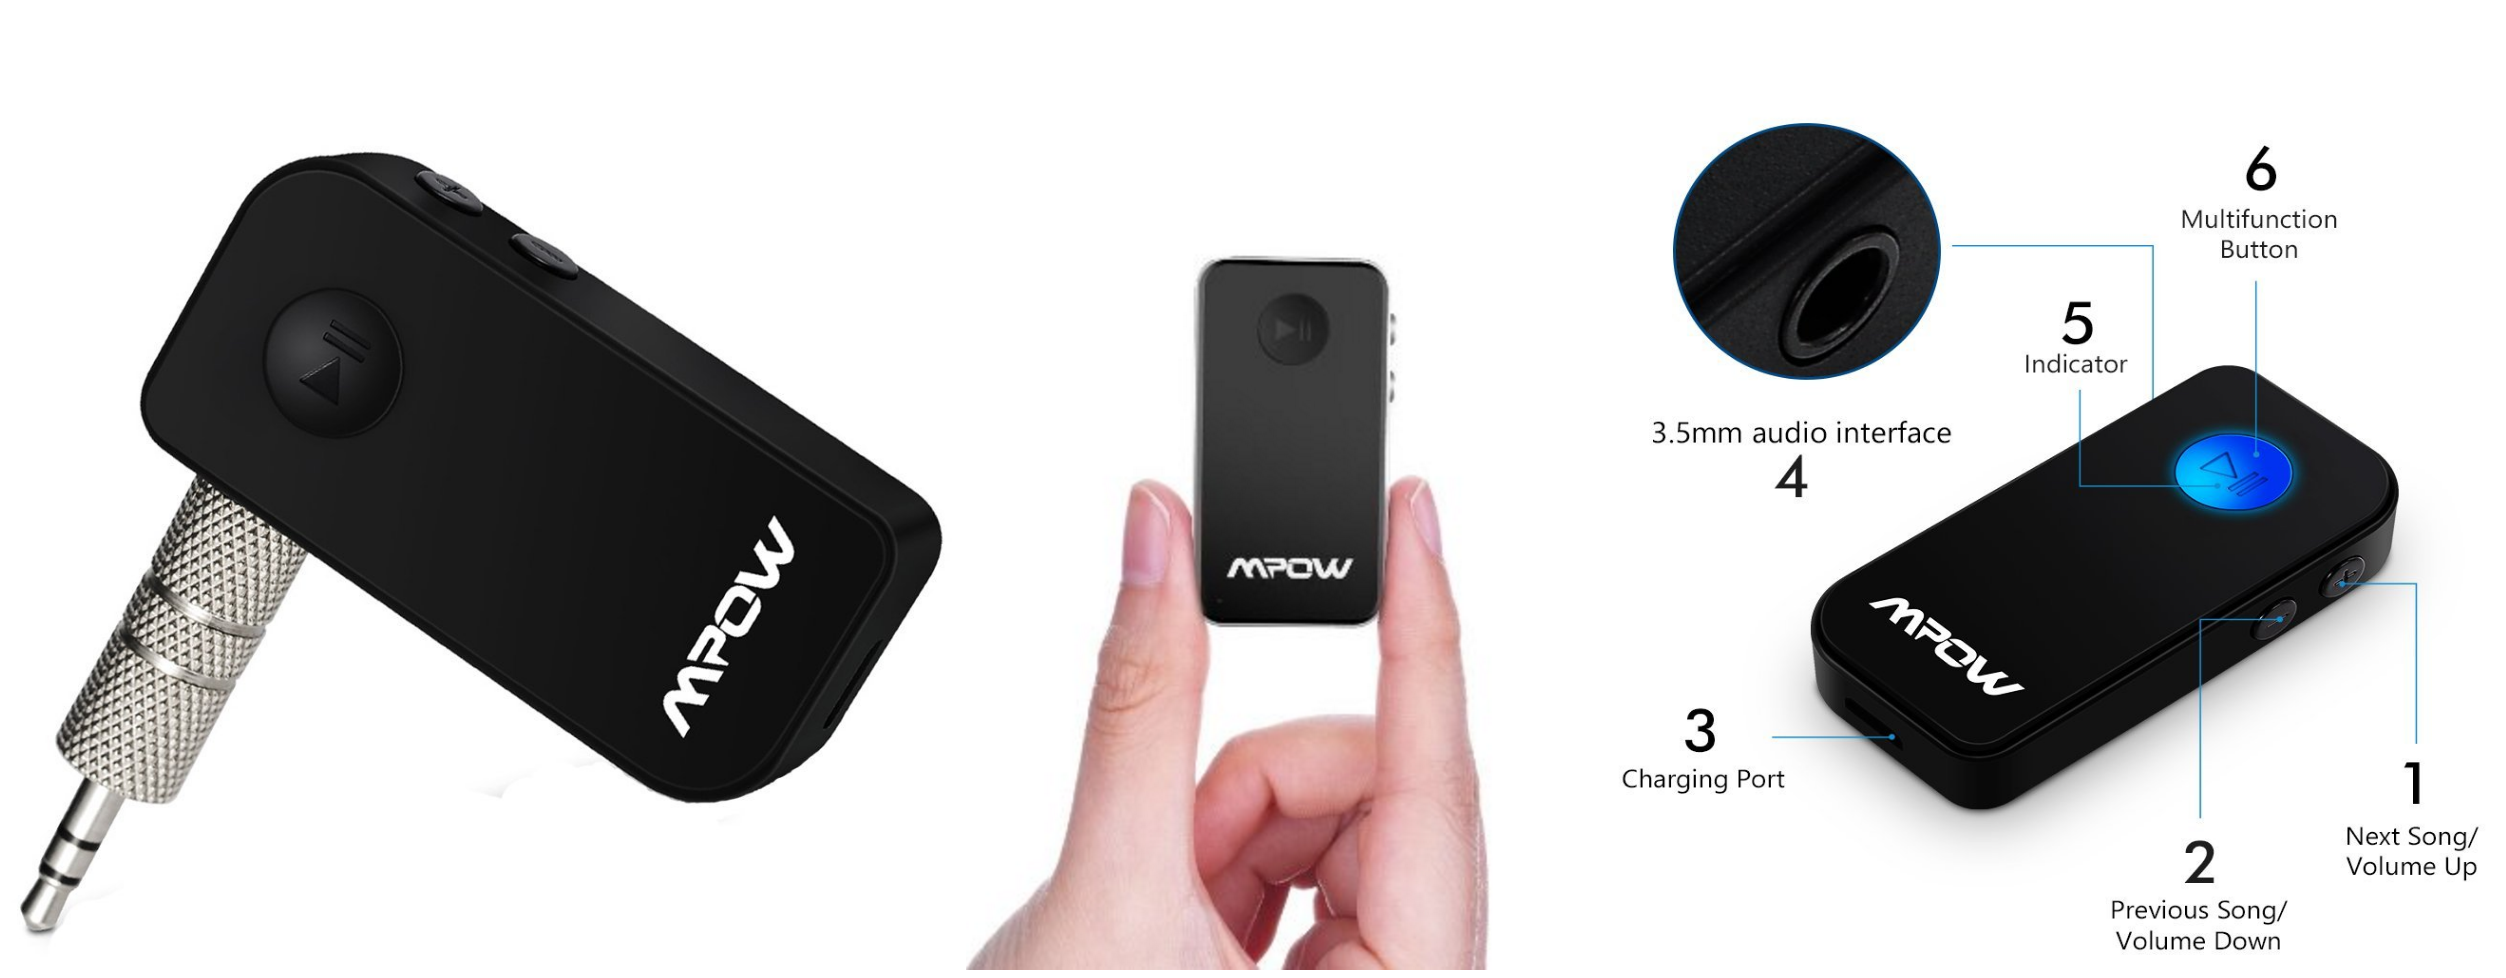 mpow-bluetooth-receiver-adapter-iphone-7-headphone